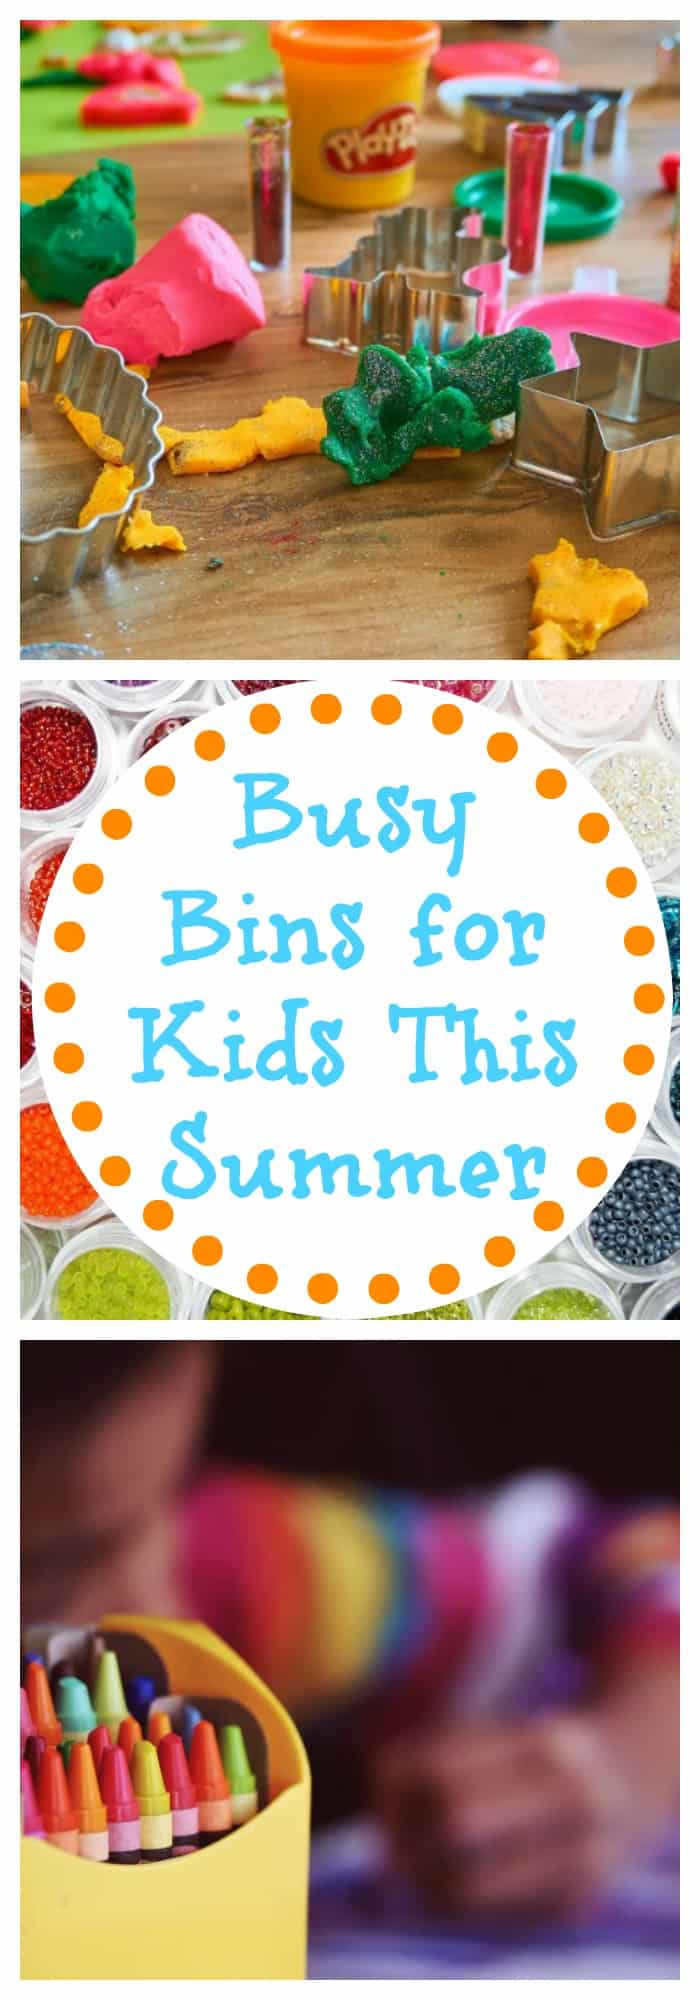 Busy Bins for Kids This Summer